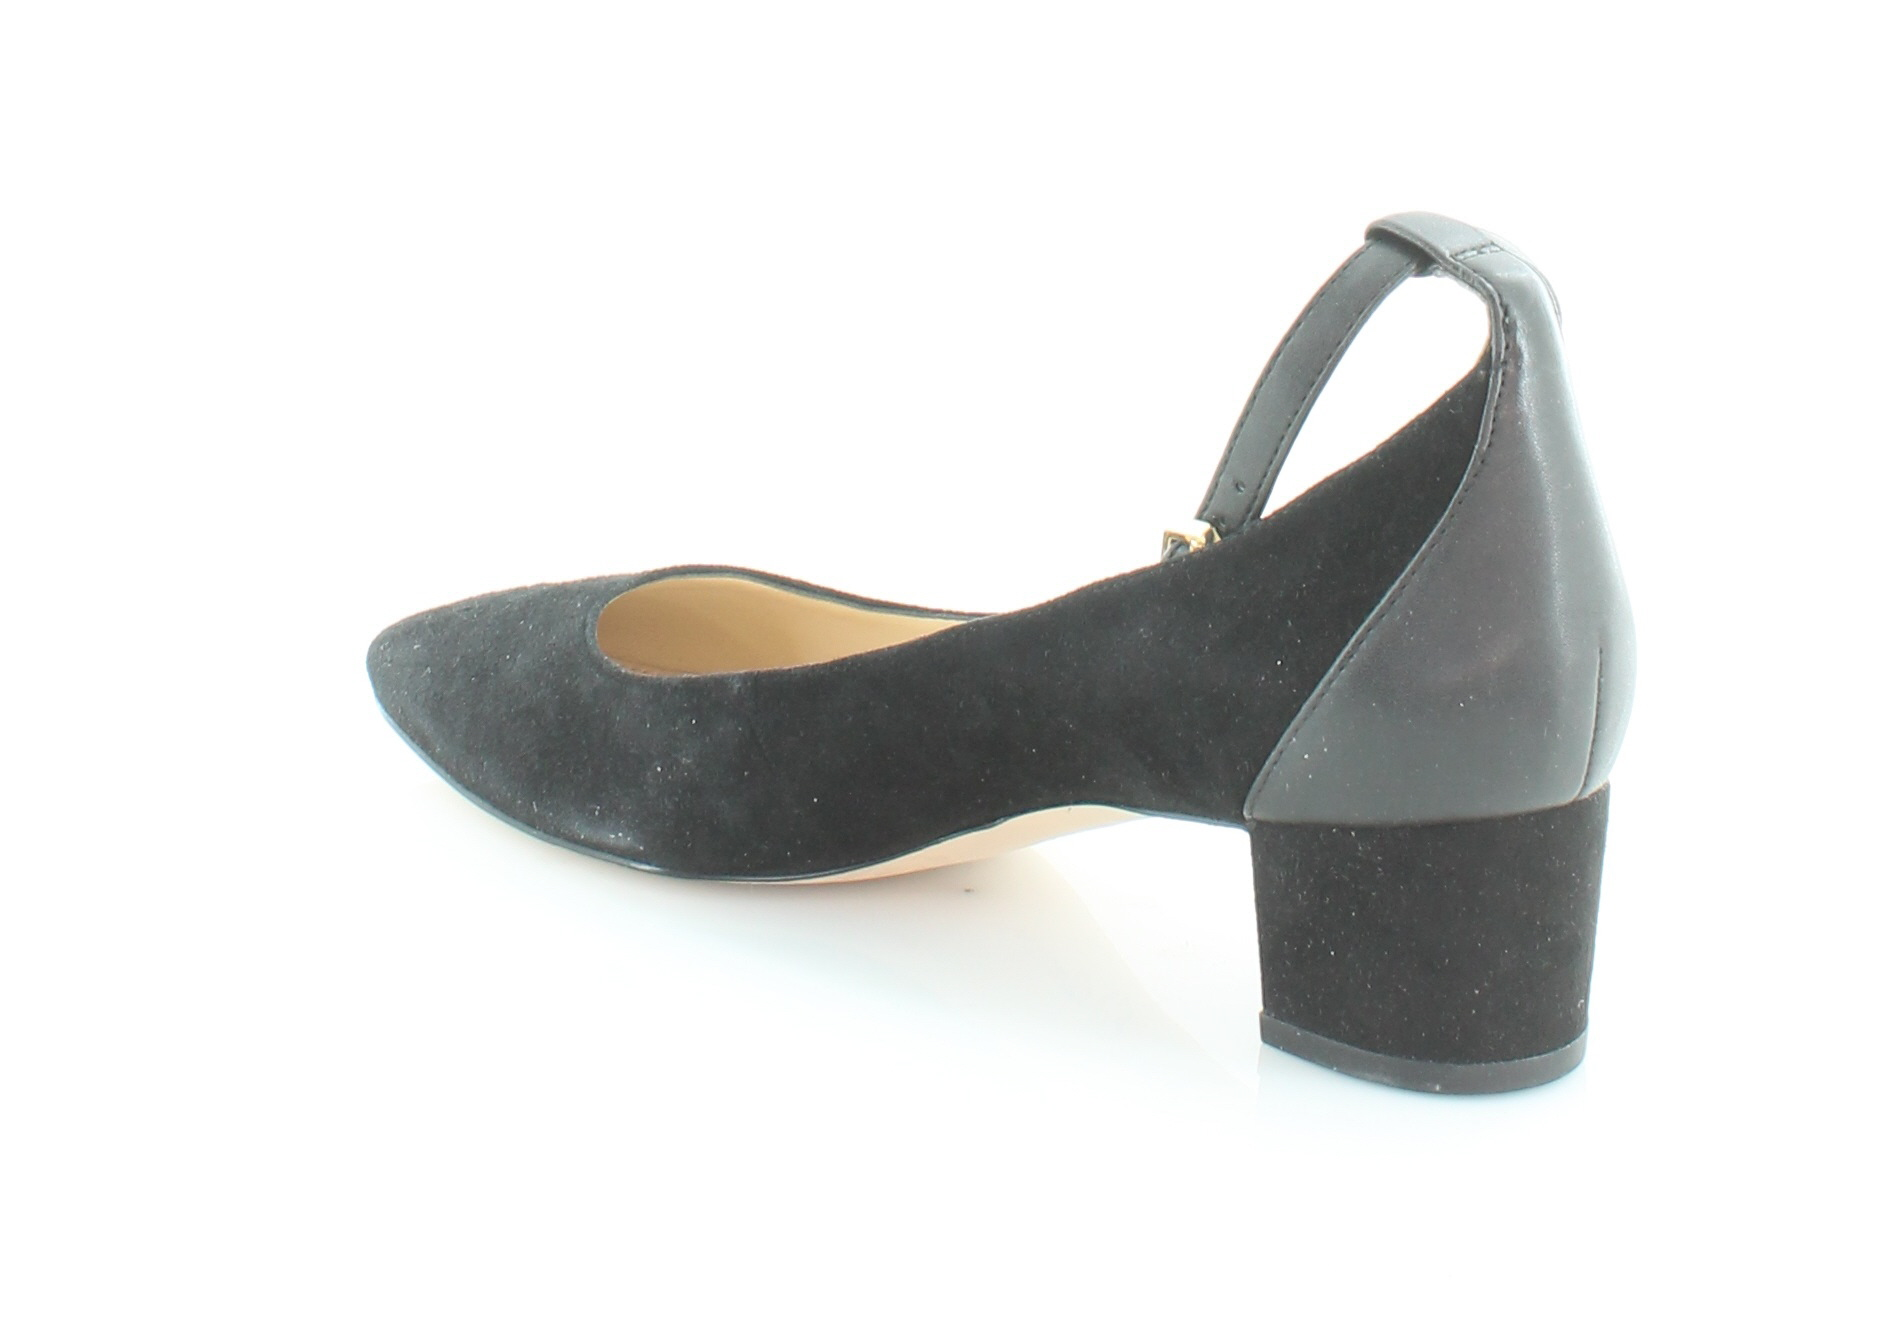 8ada3695b Sam Edelman Lola Black Womens Shoes Size 6 M Heels MSRP  140 ...